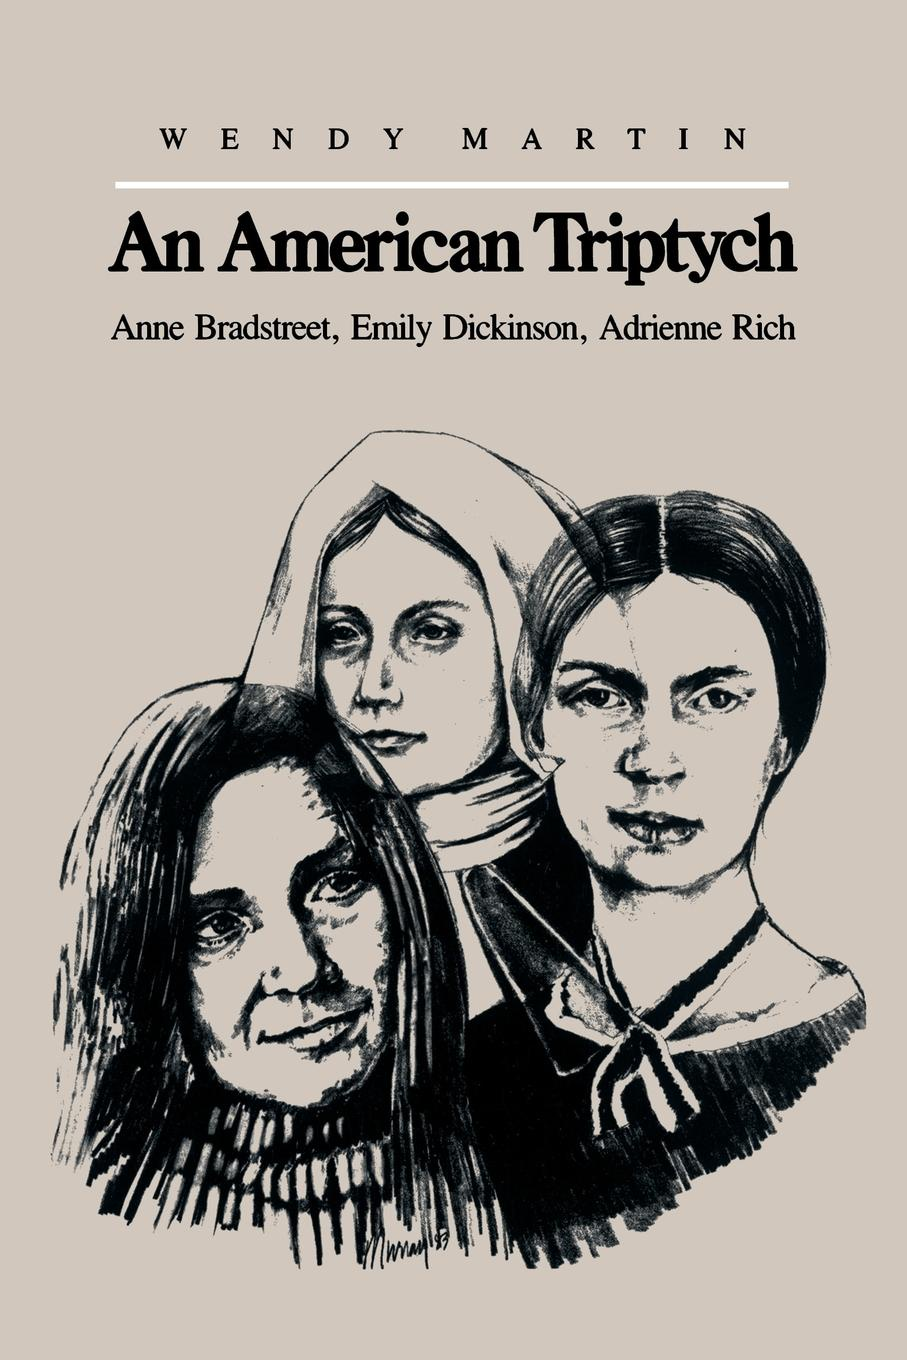 Wendy Martin An American Triptych. Anne Bradstreet, Emily Dickinson, and Adrienne Rich